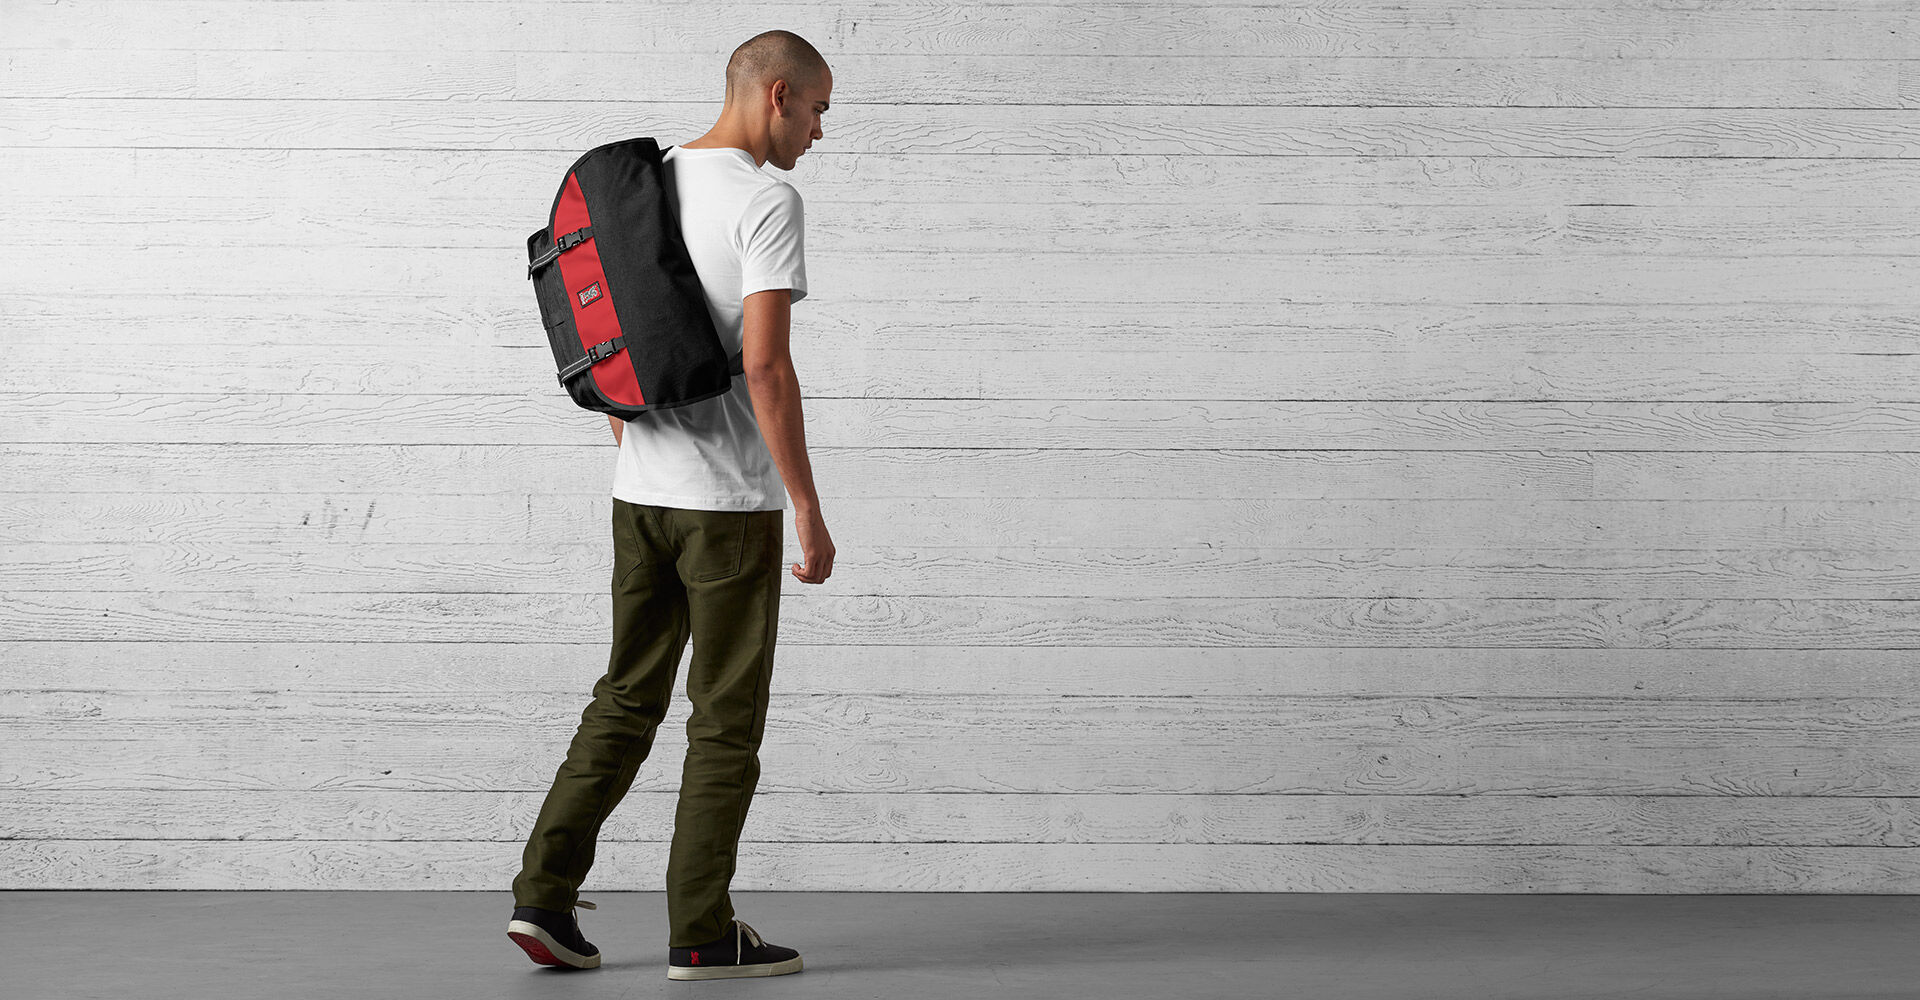 Citizen Messenger Bag in Black / Red - wide view.